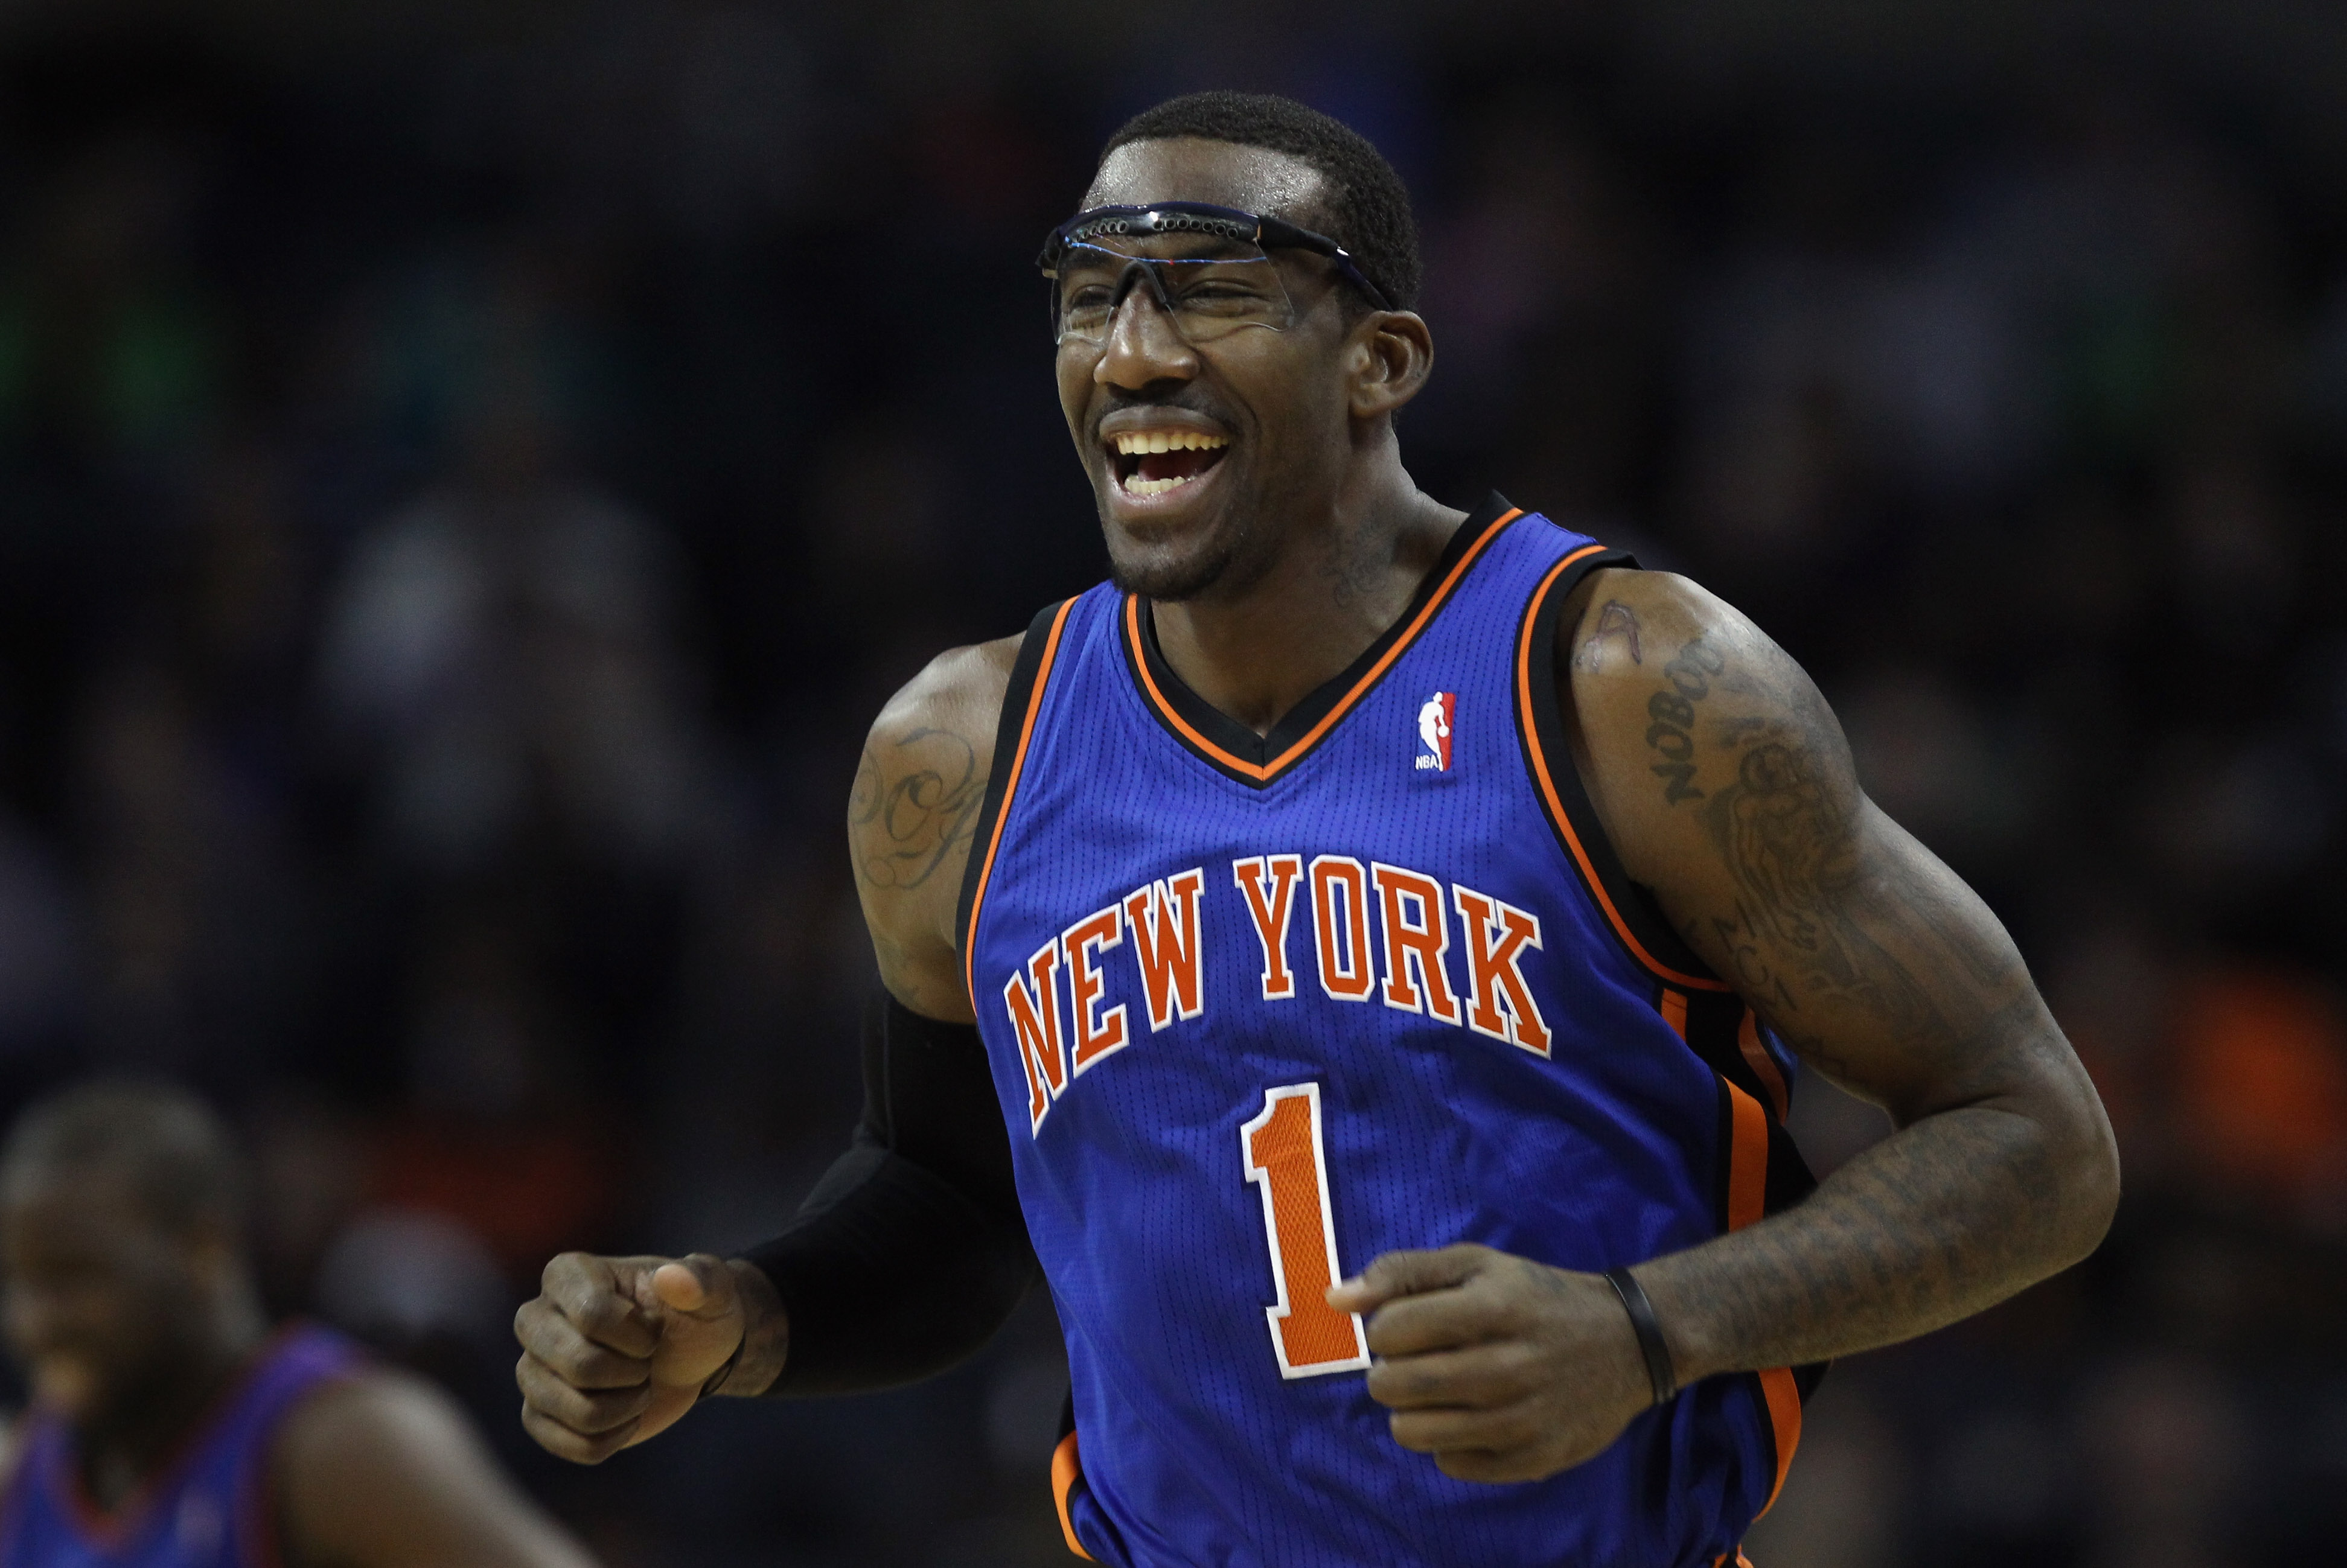 CHARLOTTE, NC - NOVEMBER 24:  Amare Stoudemire #1 of the New York Knicks during his game against the Charlotte Bobcats at Time Warner Cable Arena on November 24, 2010 in Charlotte, North Carolina.  NOTE TO USER: User expressly acknowledges and agrees that